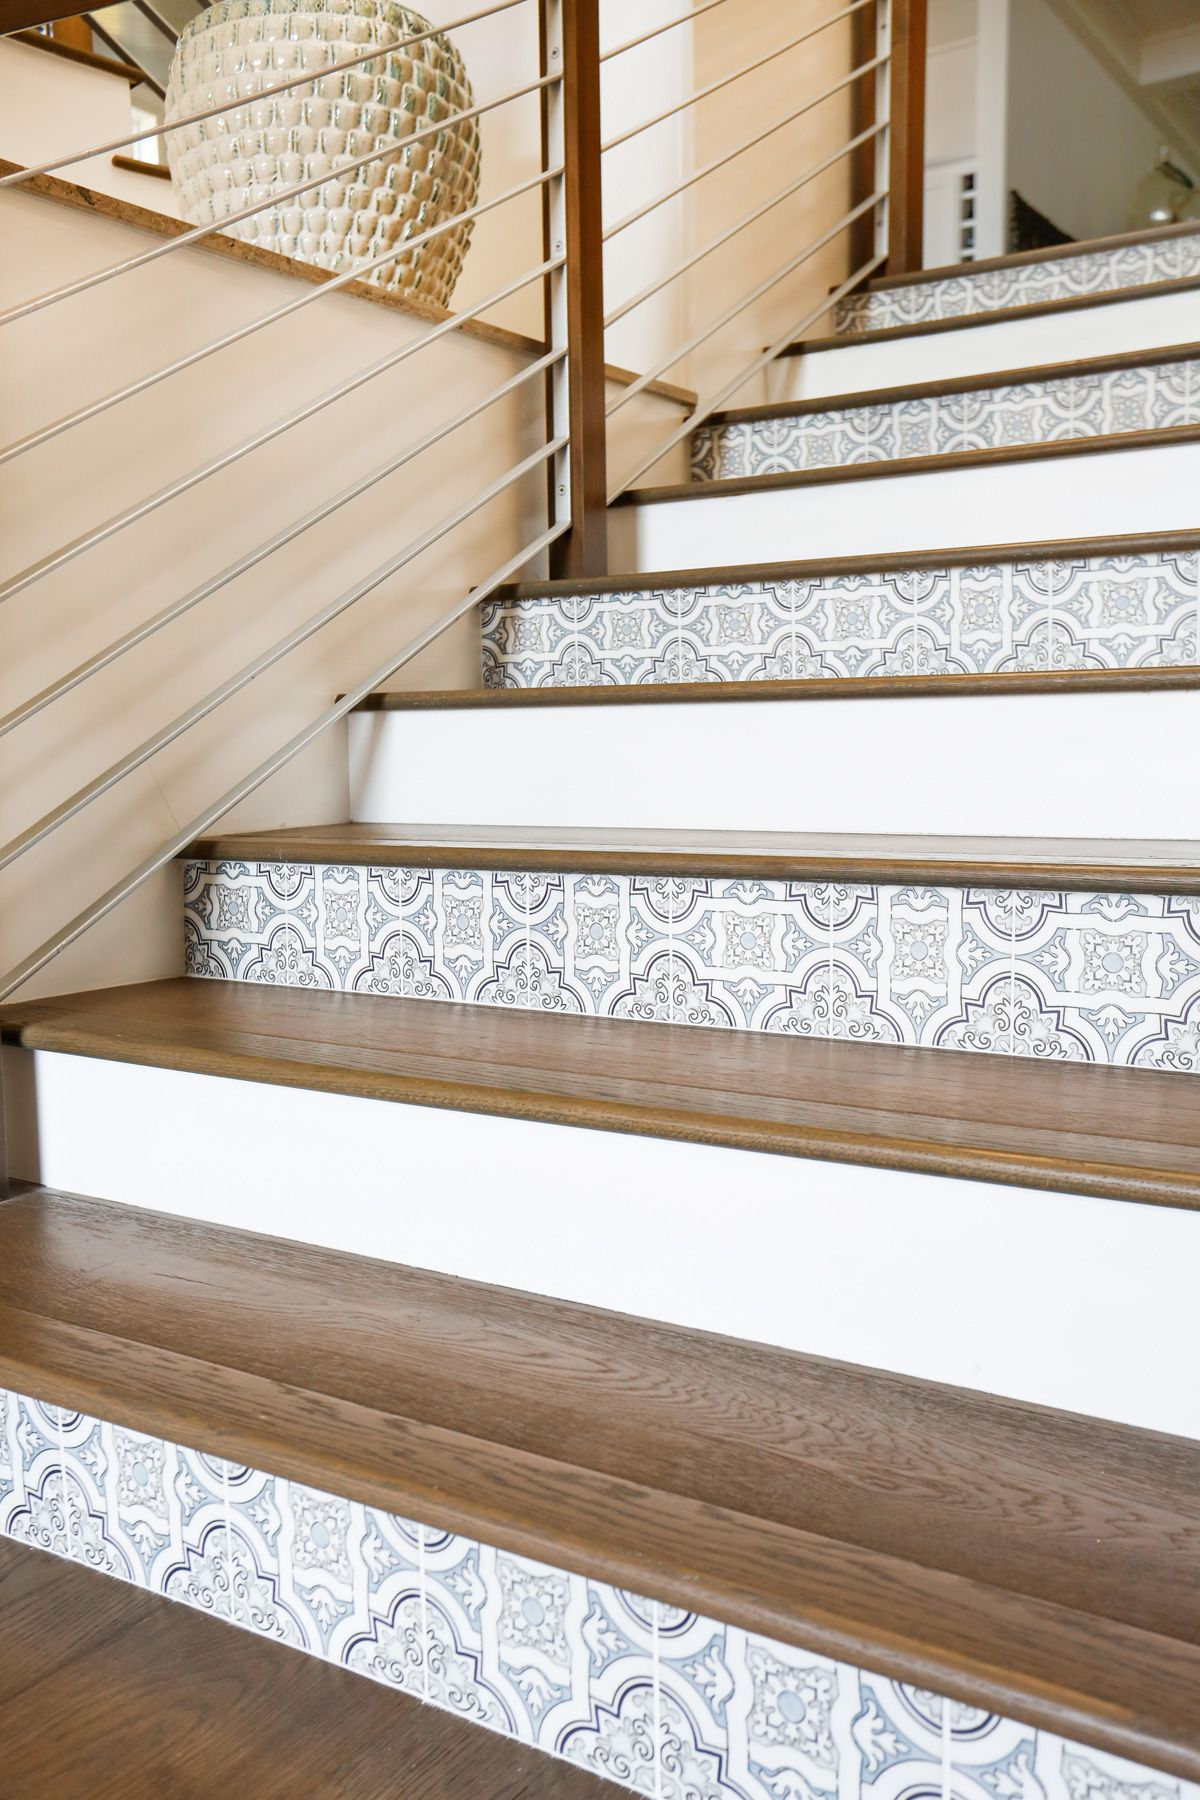 Project San Clemente Tile Stairs Stairs House Design   Stair Riser Tiles Designs